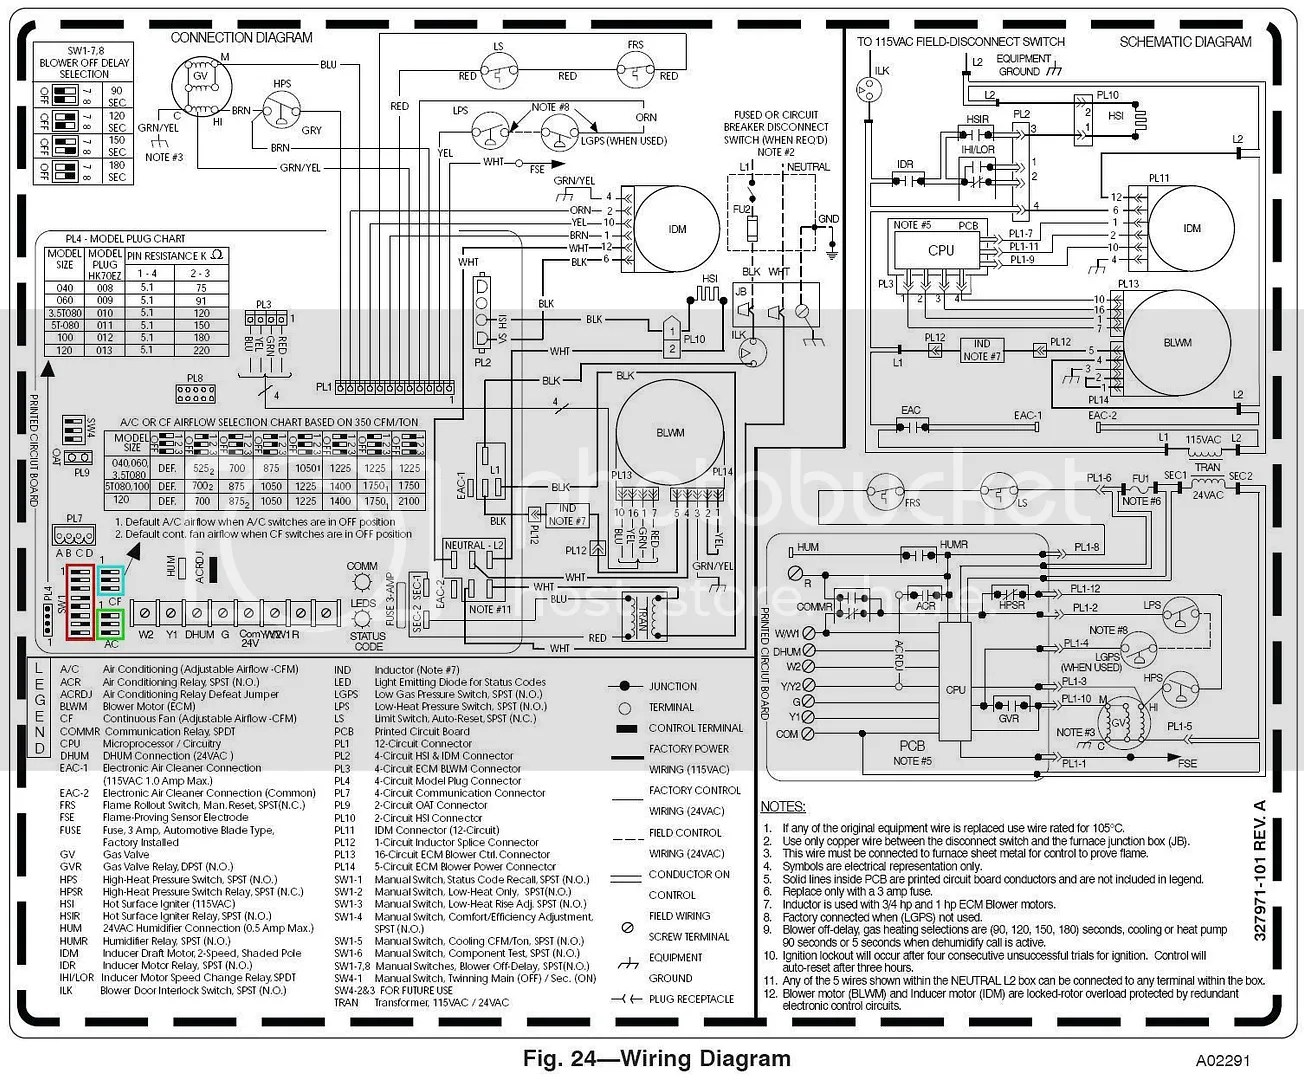 Carrier 58MVP diagram_zpsmgaigigg?resize=665%2C551 ge ecm x13 motor wiring diagram wiring diagram ge ecm motor wiring diagram at panicattacktreatment.co